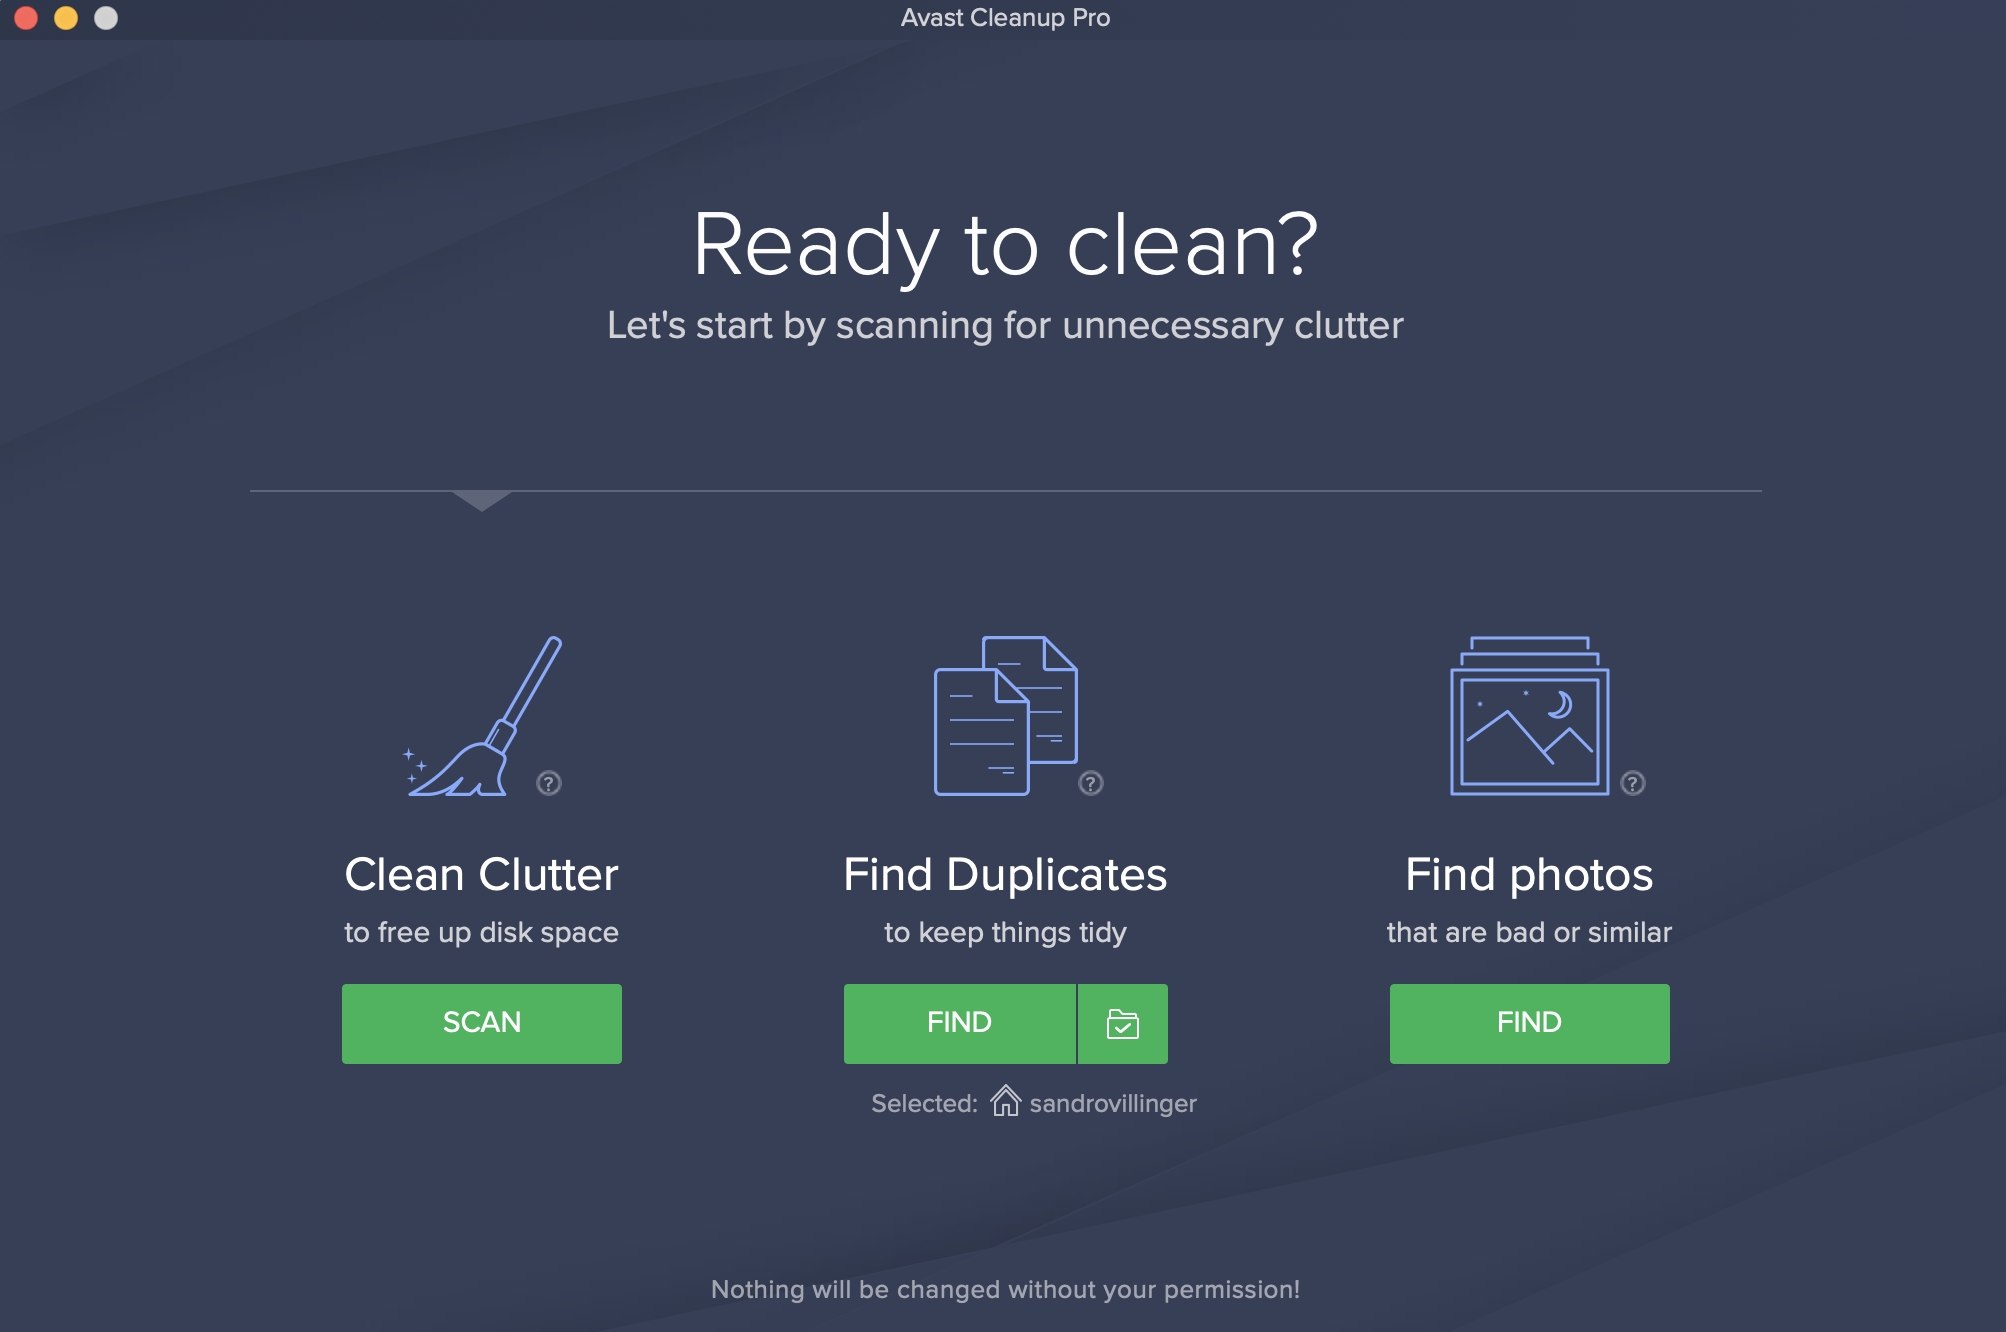 ready-to-clean-avast-photo-cleaner-mac